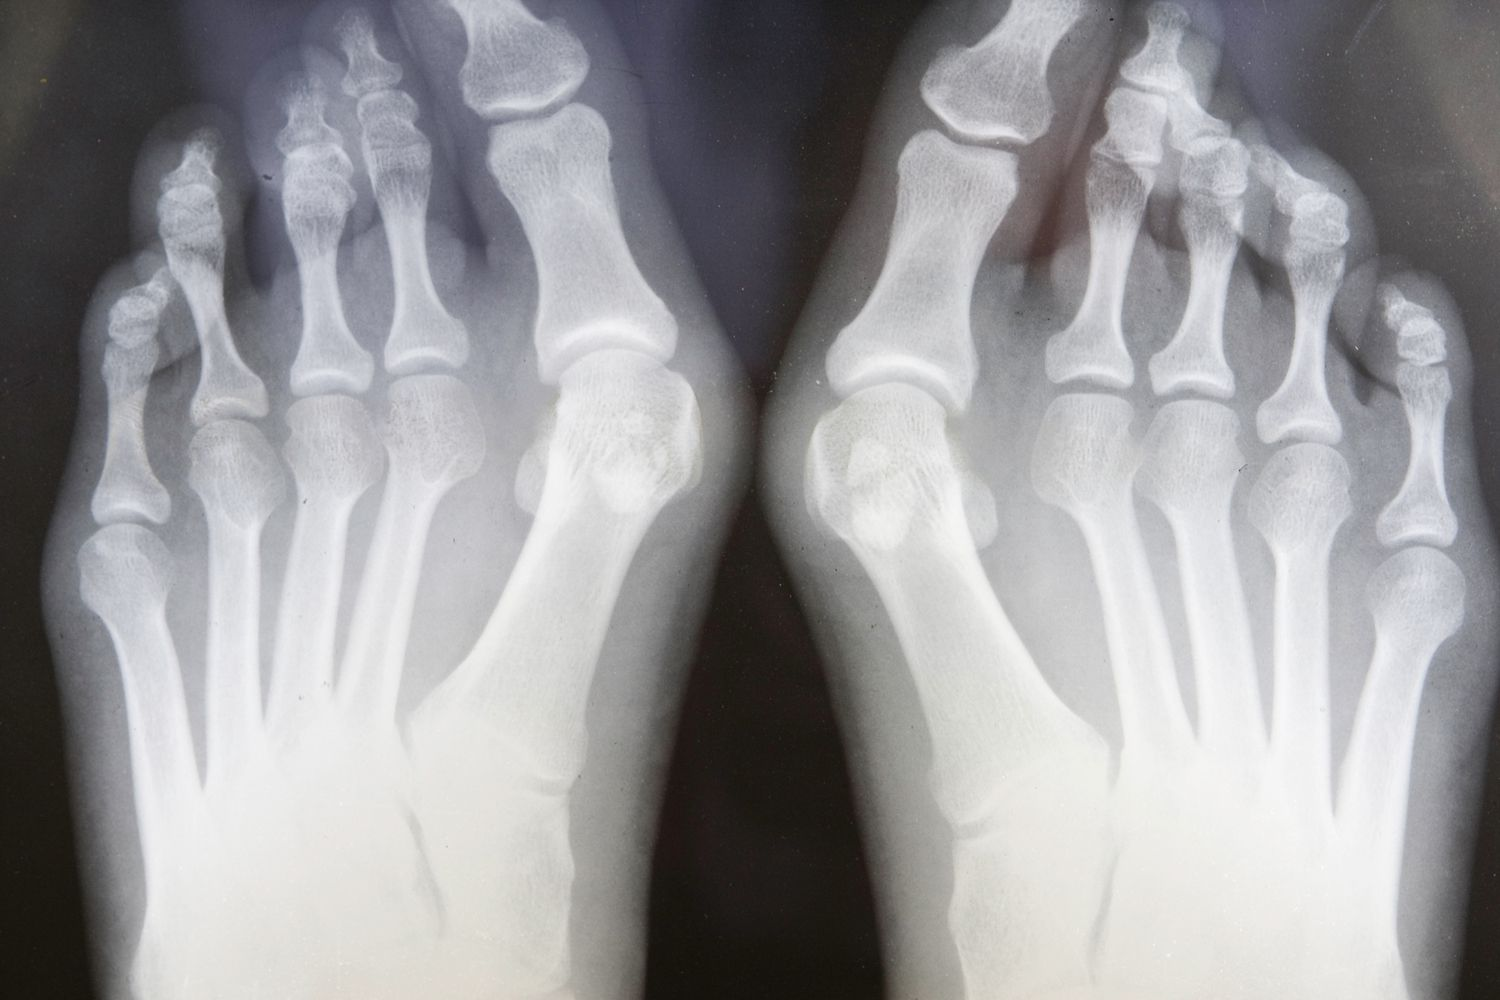 A tailor's bunion in X-ray